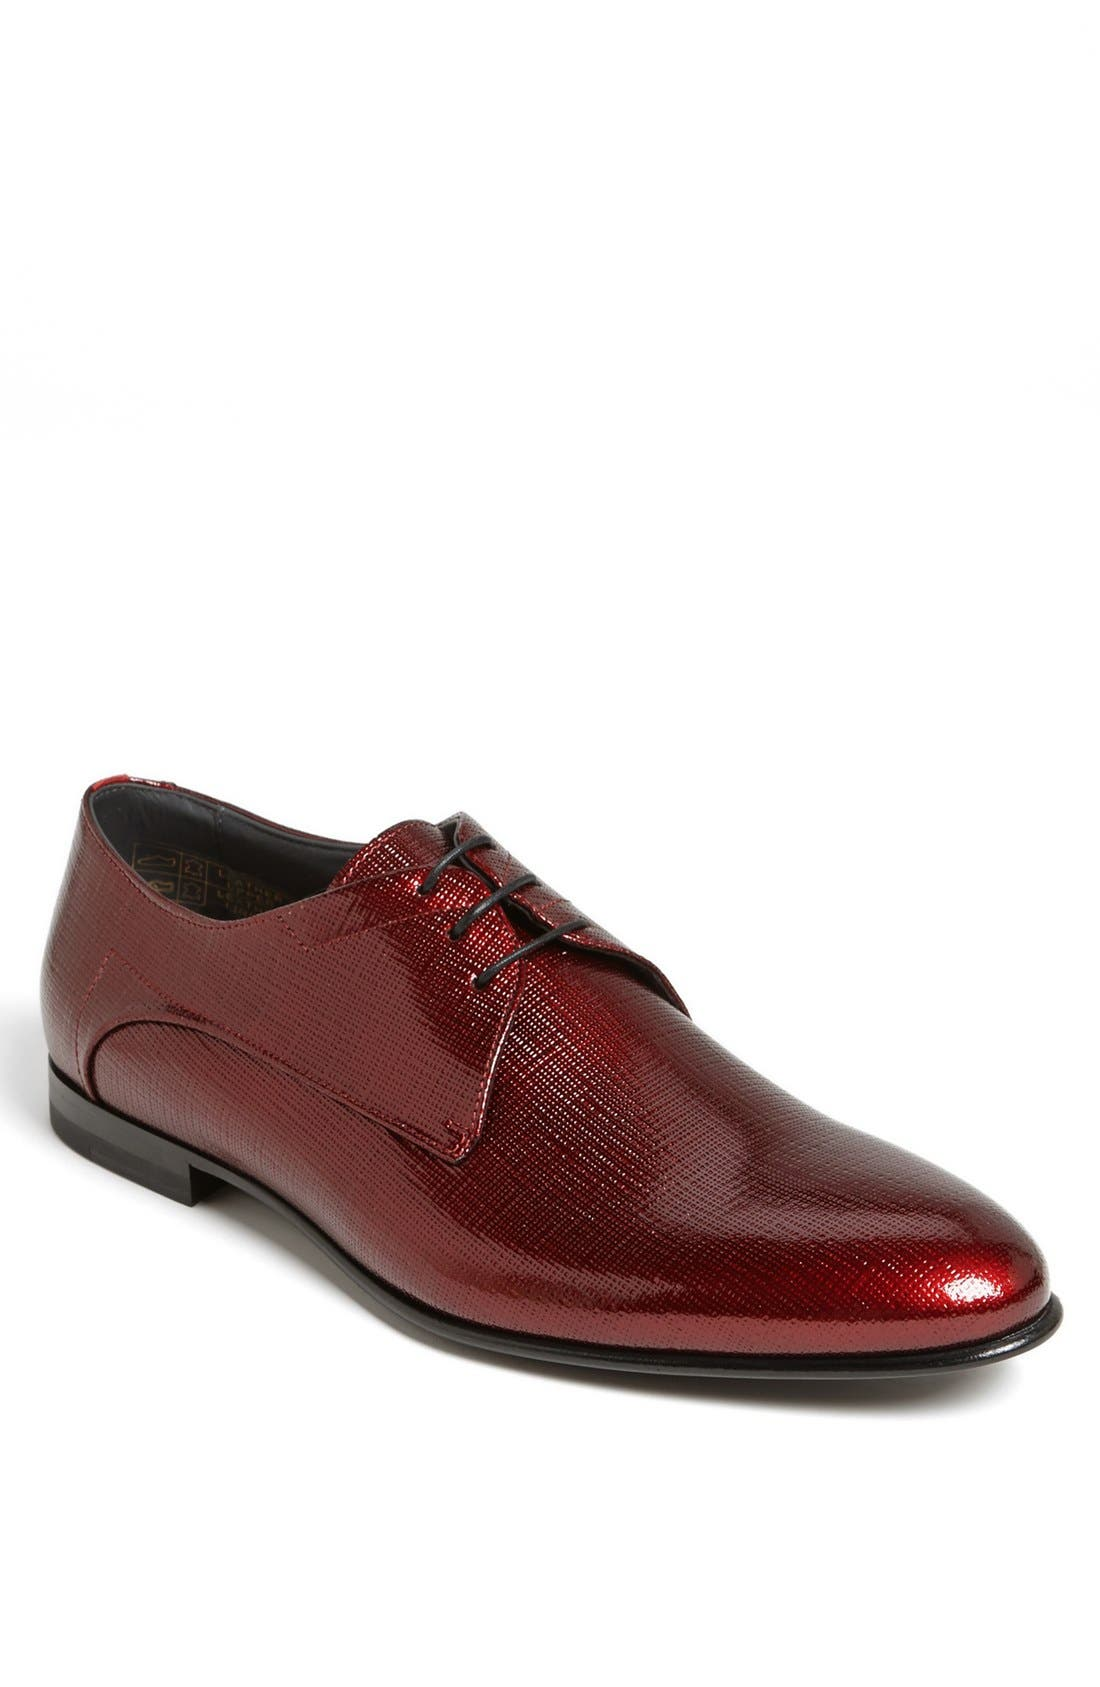 Main Image - HUGO 'Eviano' Plain Toe Derby